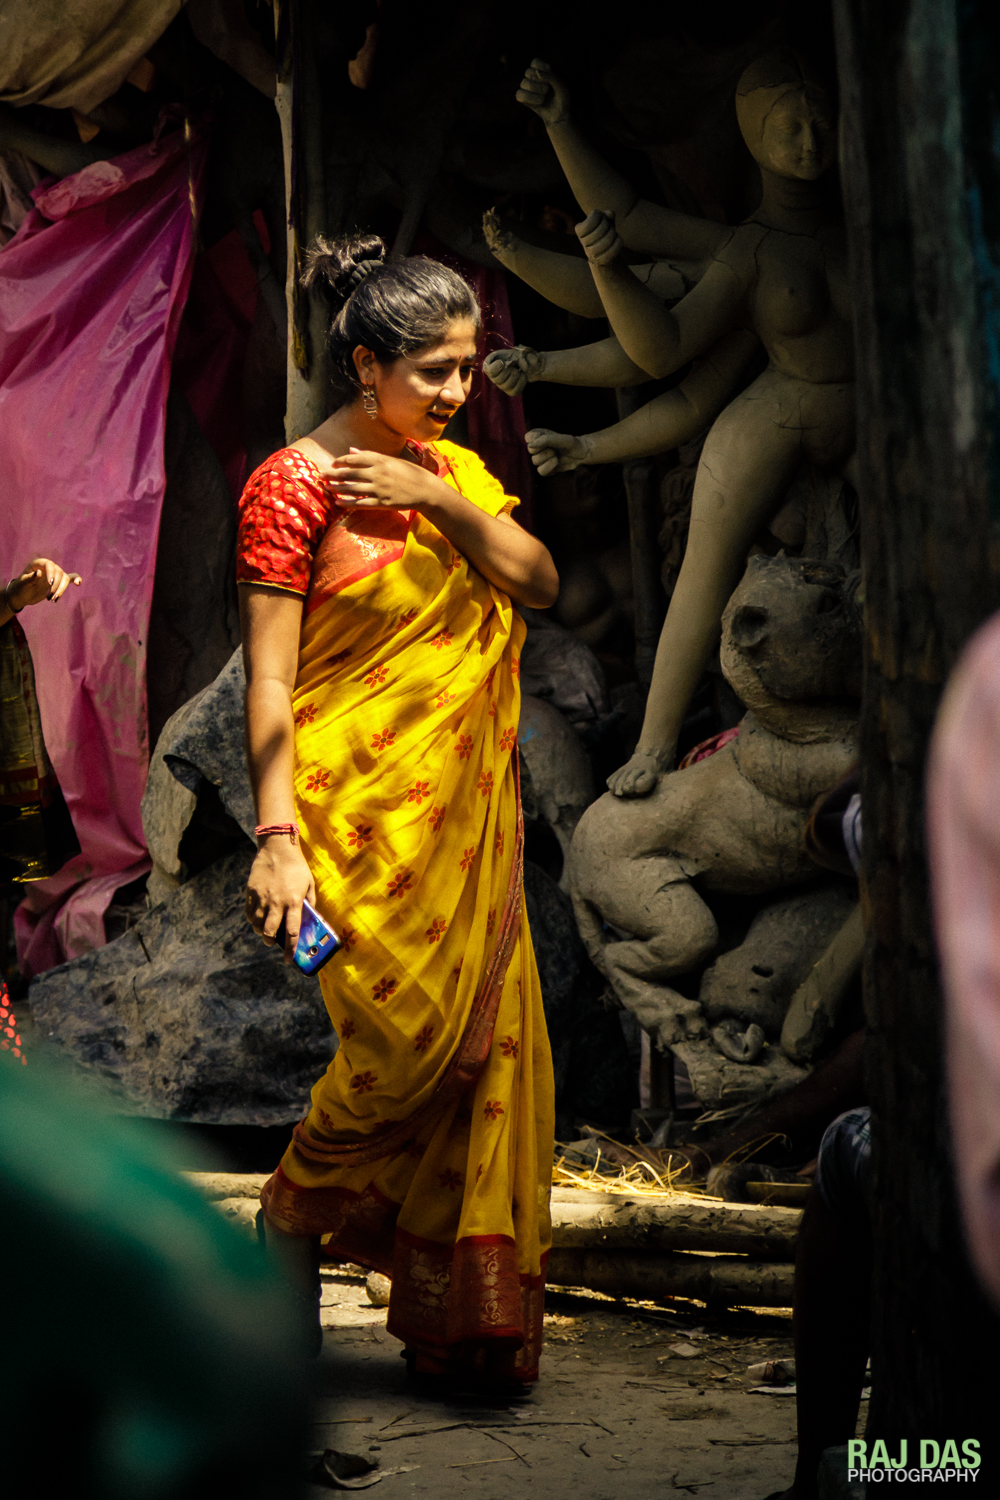 A young Bengali girl in a traditional sari walks past a Durga idol that is still being built